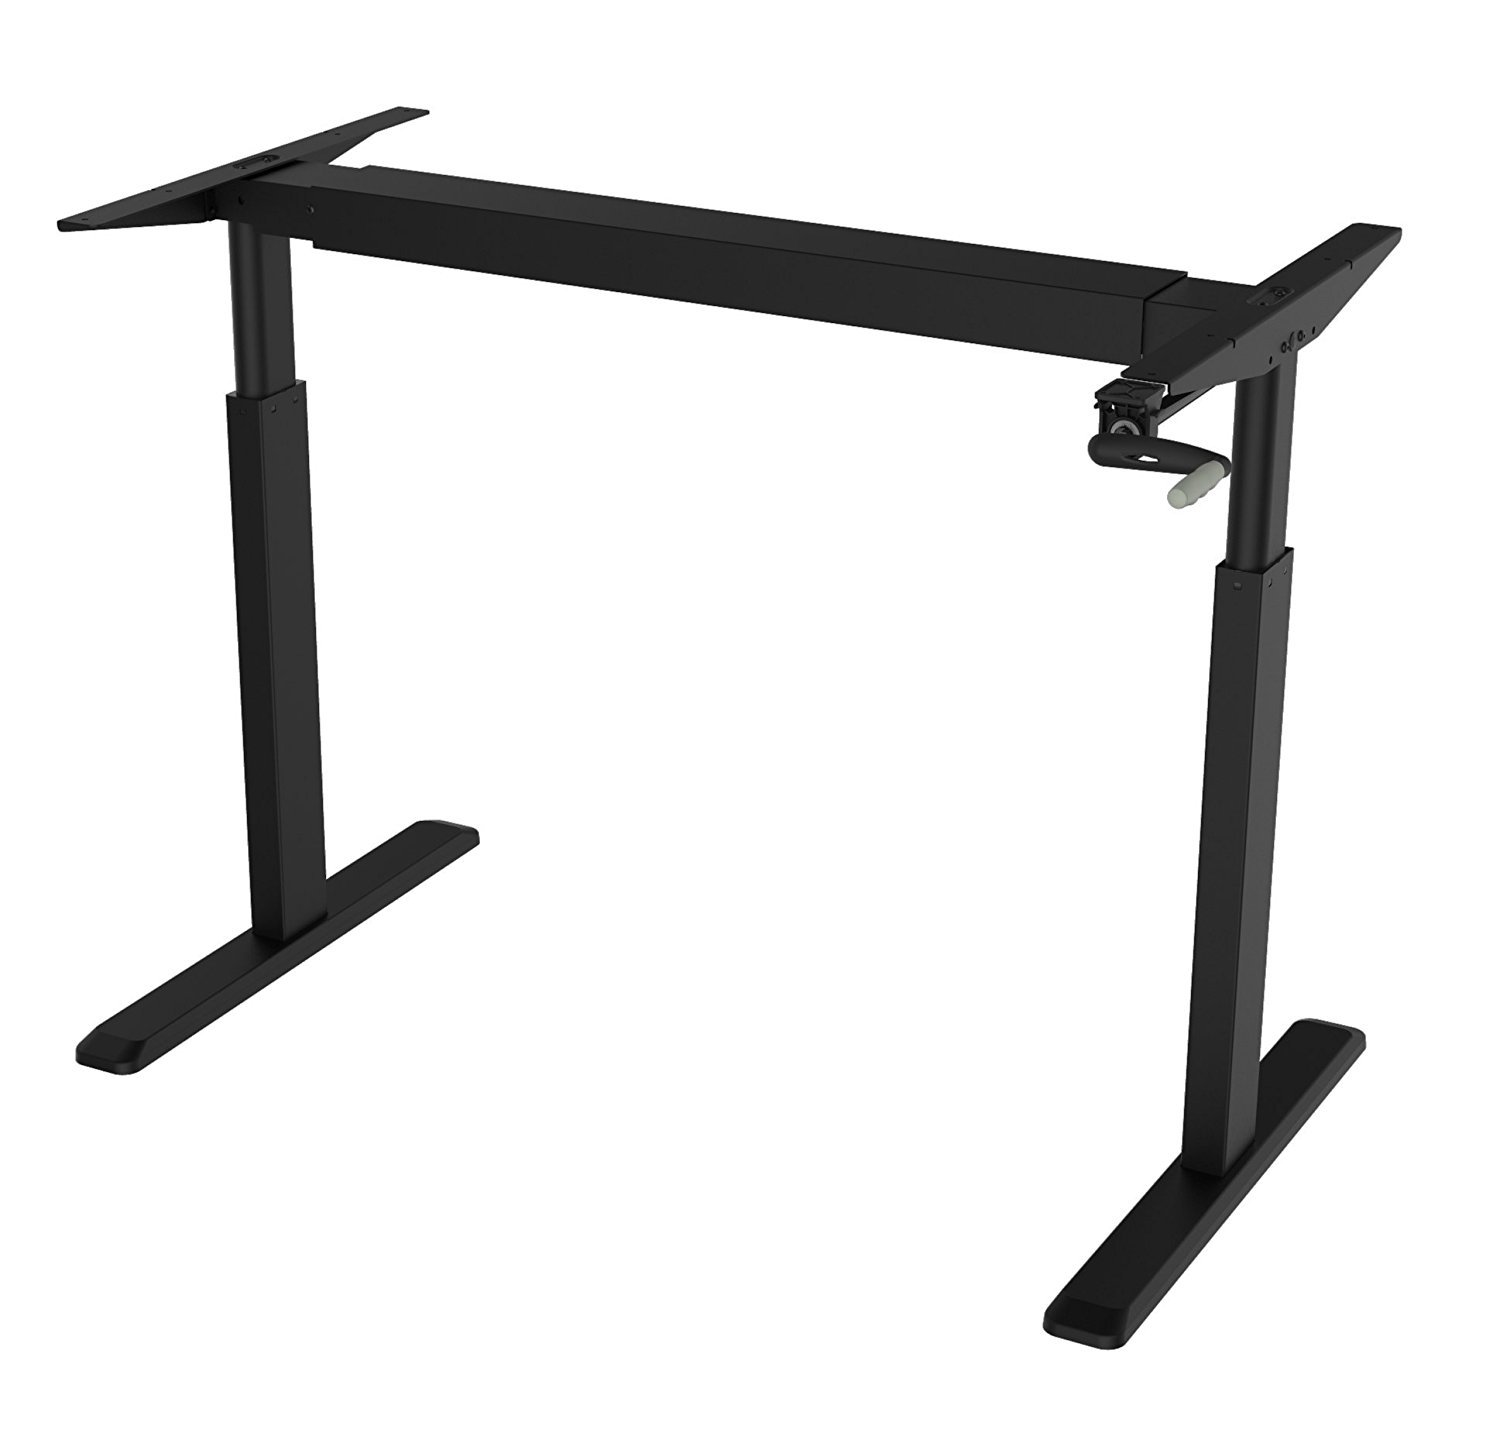 Ergomax Office Adjustable Height Crank Desk, Black